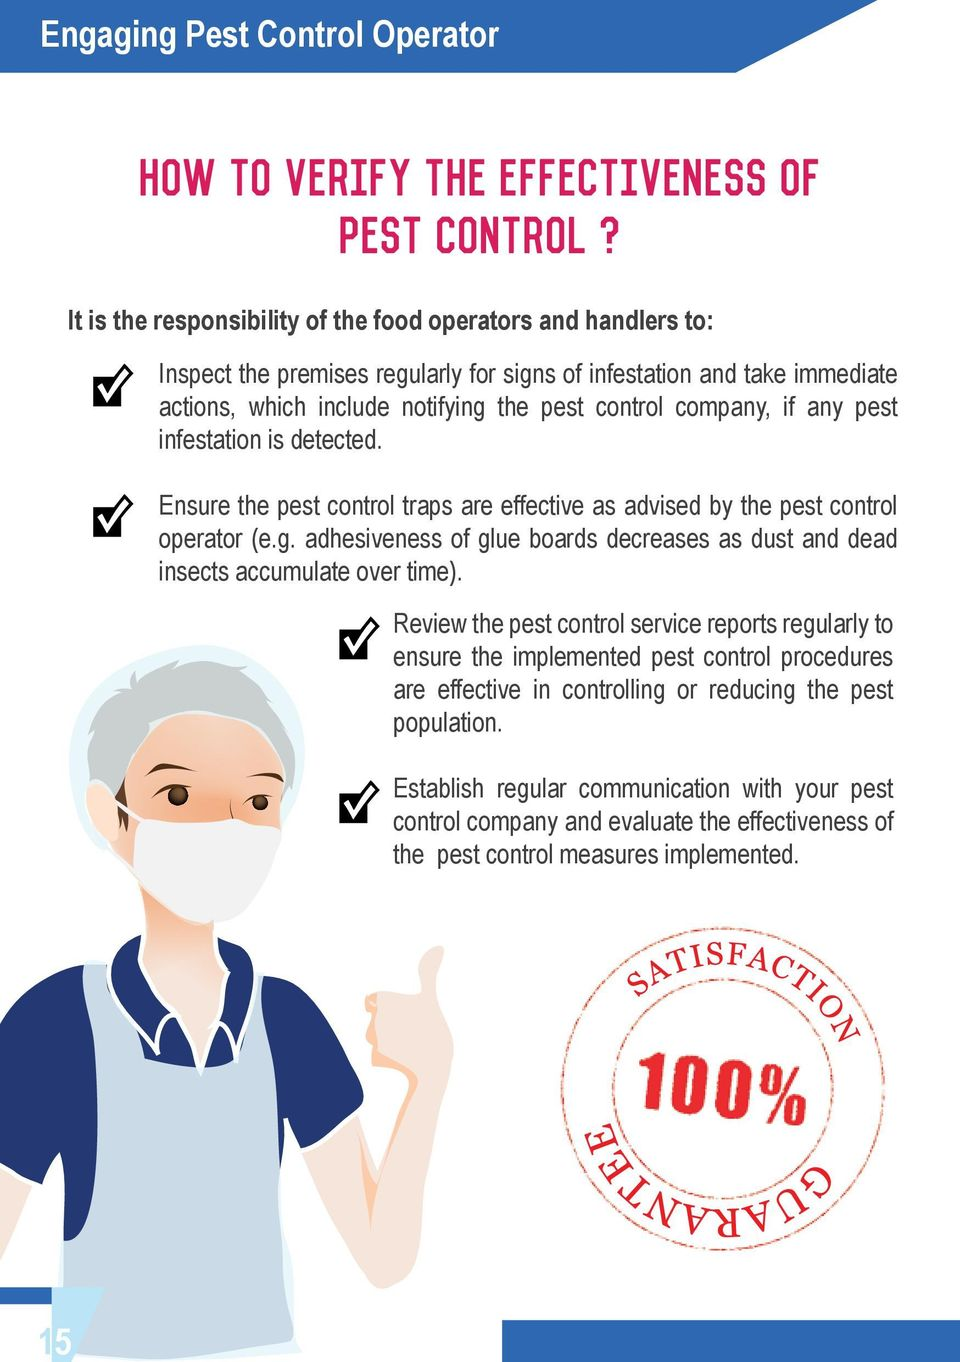 if any pest infestation is detected. Ensure the pest control traps are effective as advised by the pest control operator (e.g.